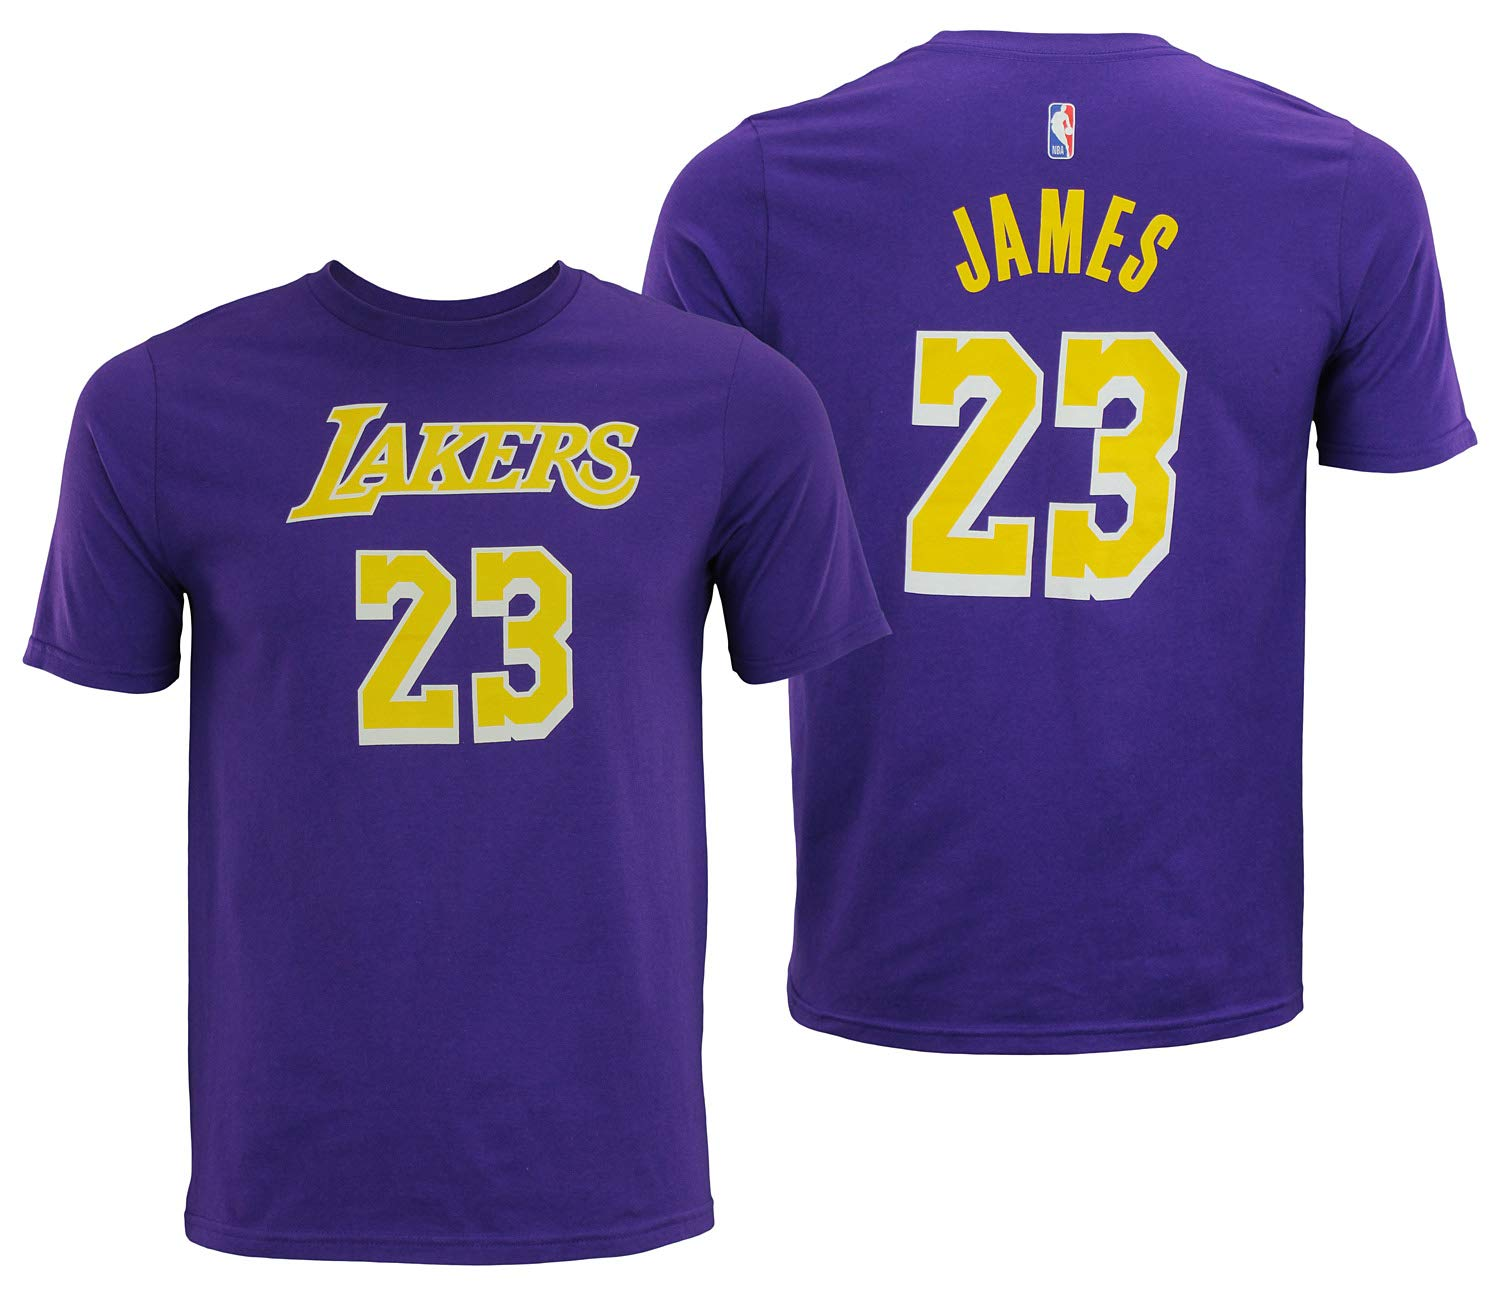 release date 29584 707e7 NBA Youth Los Angeles Lakers Lebron James Player Tee, Pick A Color